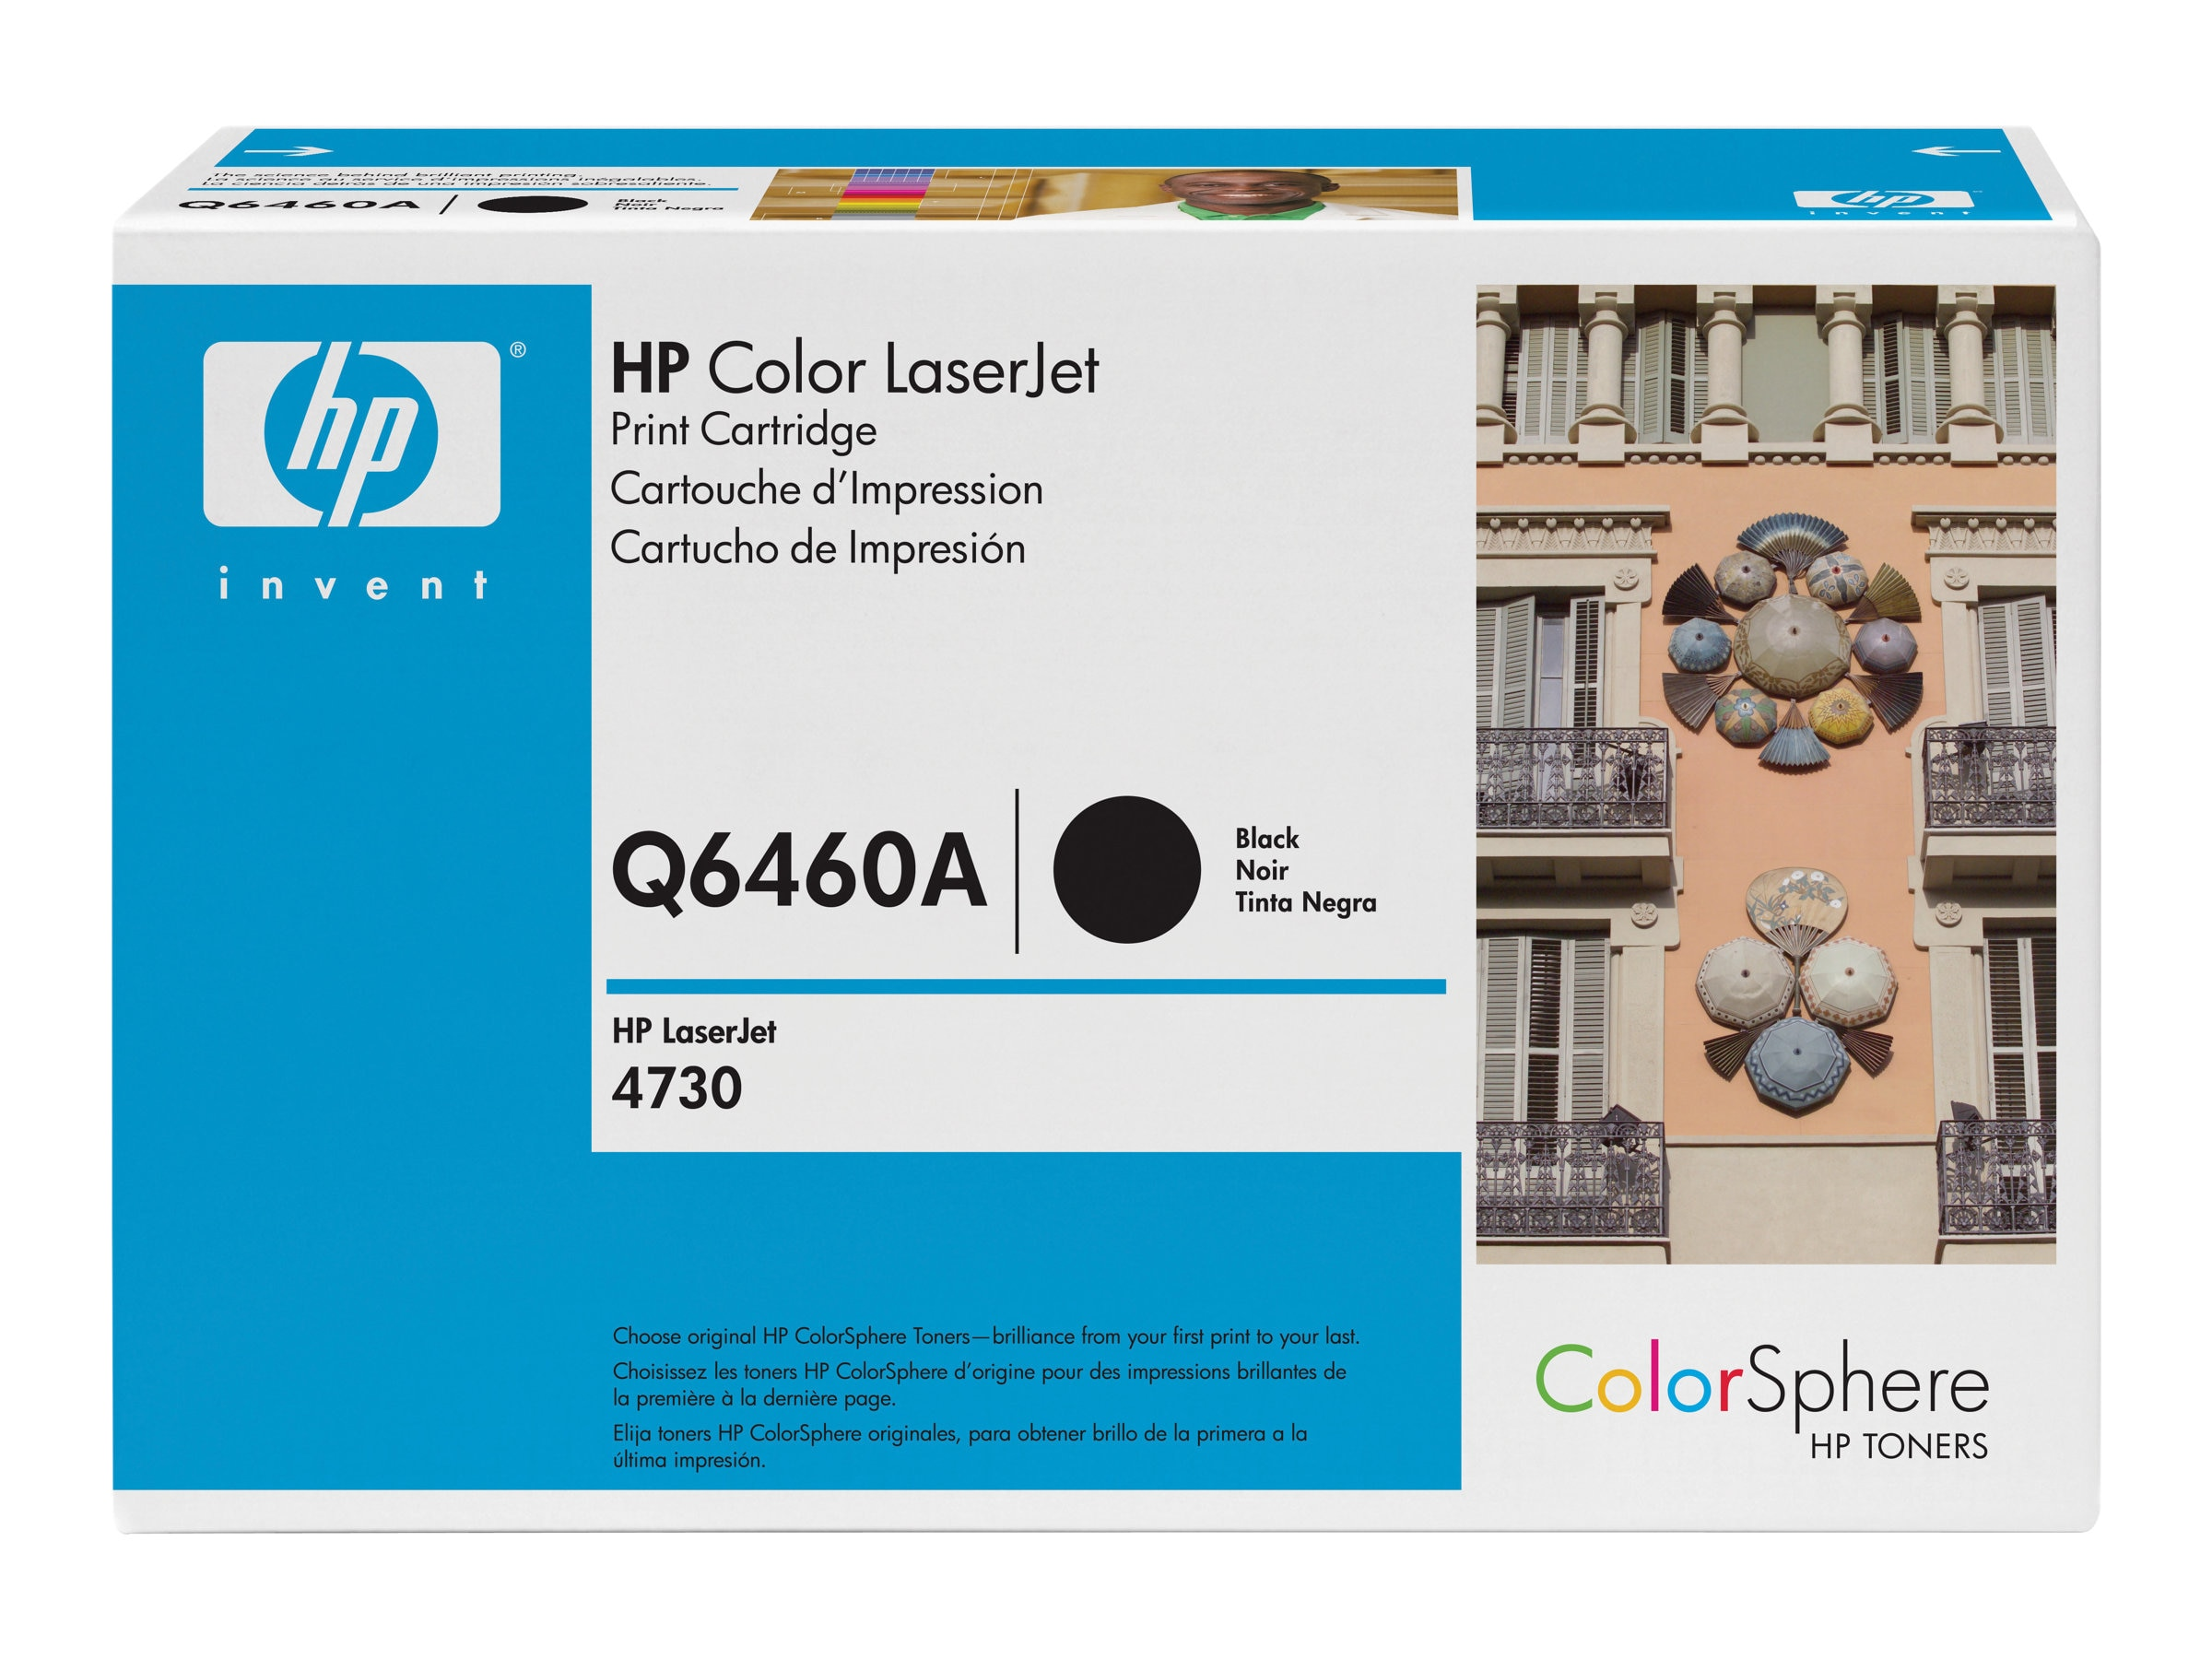 HP Inc. Q6460A Image 2